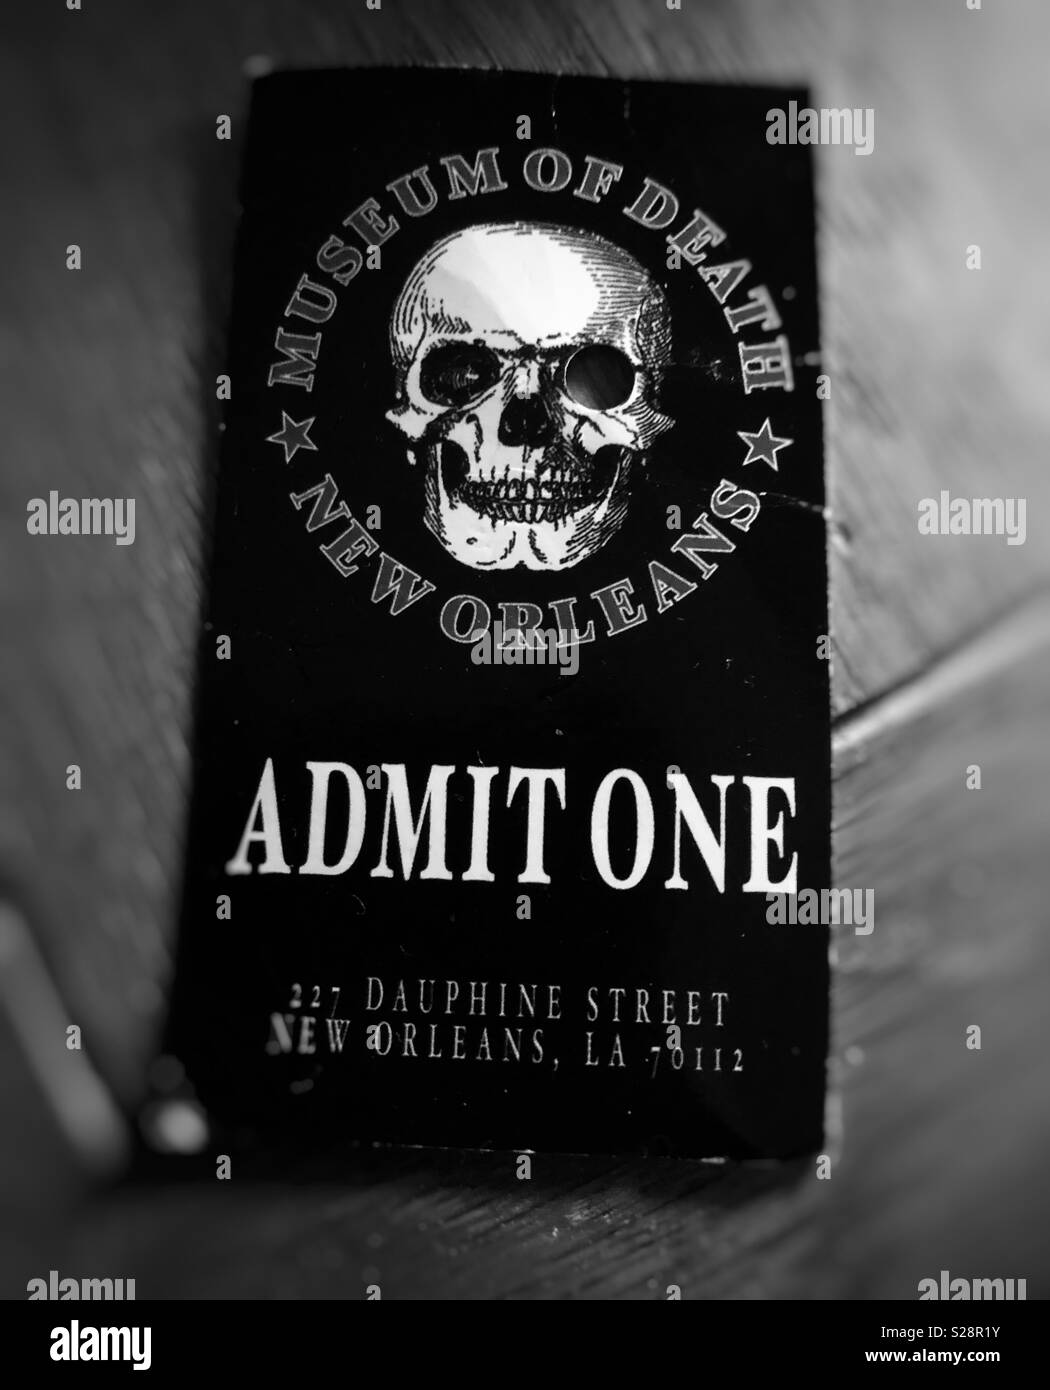 A Museum of Death ticket stub from New Orleans, Louisiana, USA - Stock Image